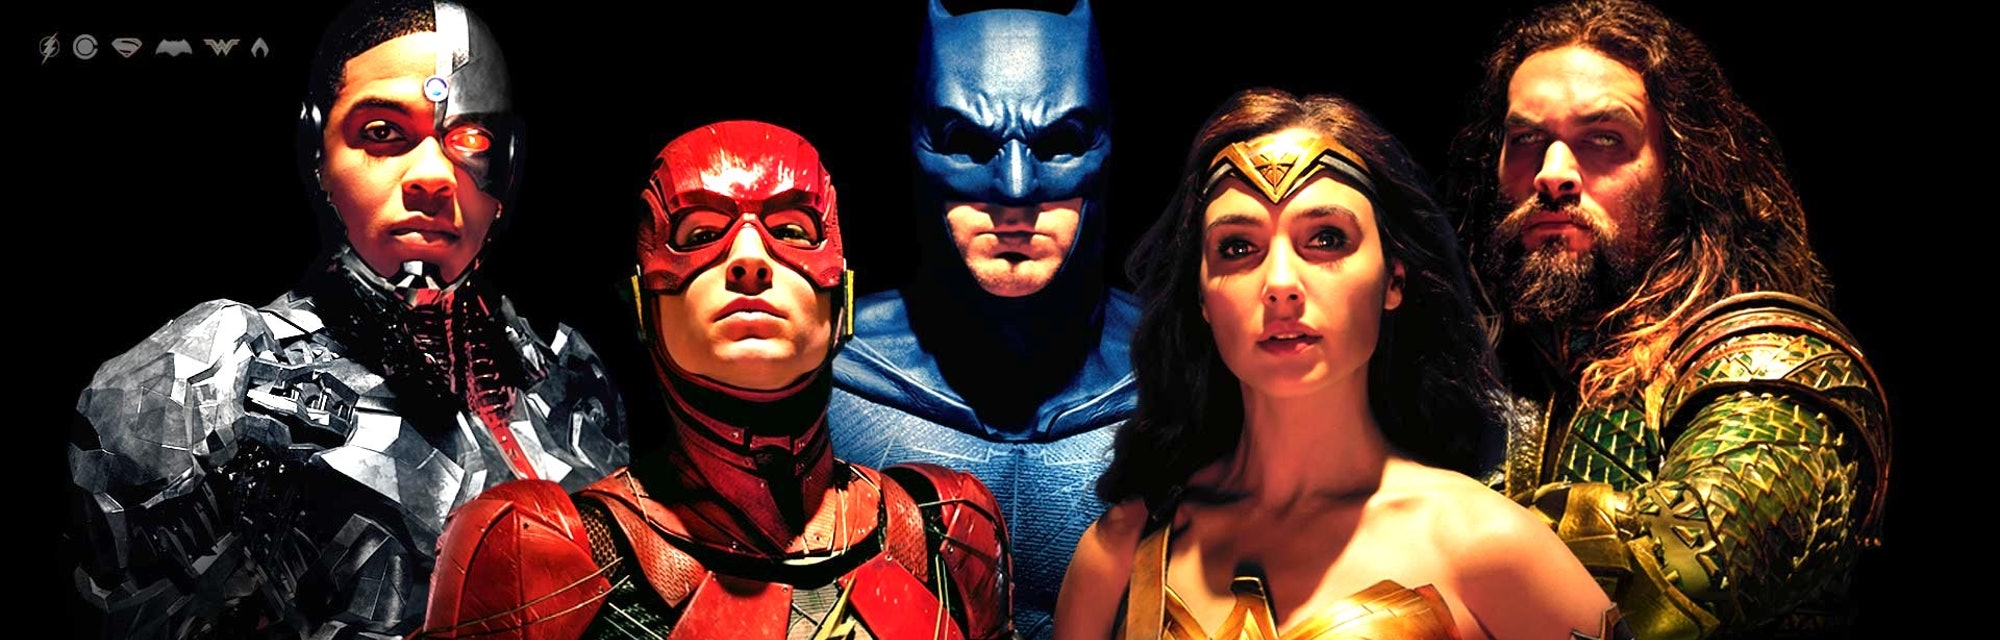 Justice League 2': Zack Snyder may have revealed trippy sequel plans